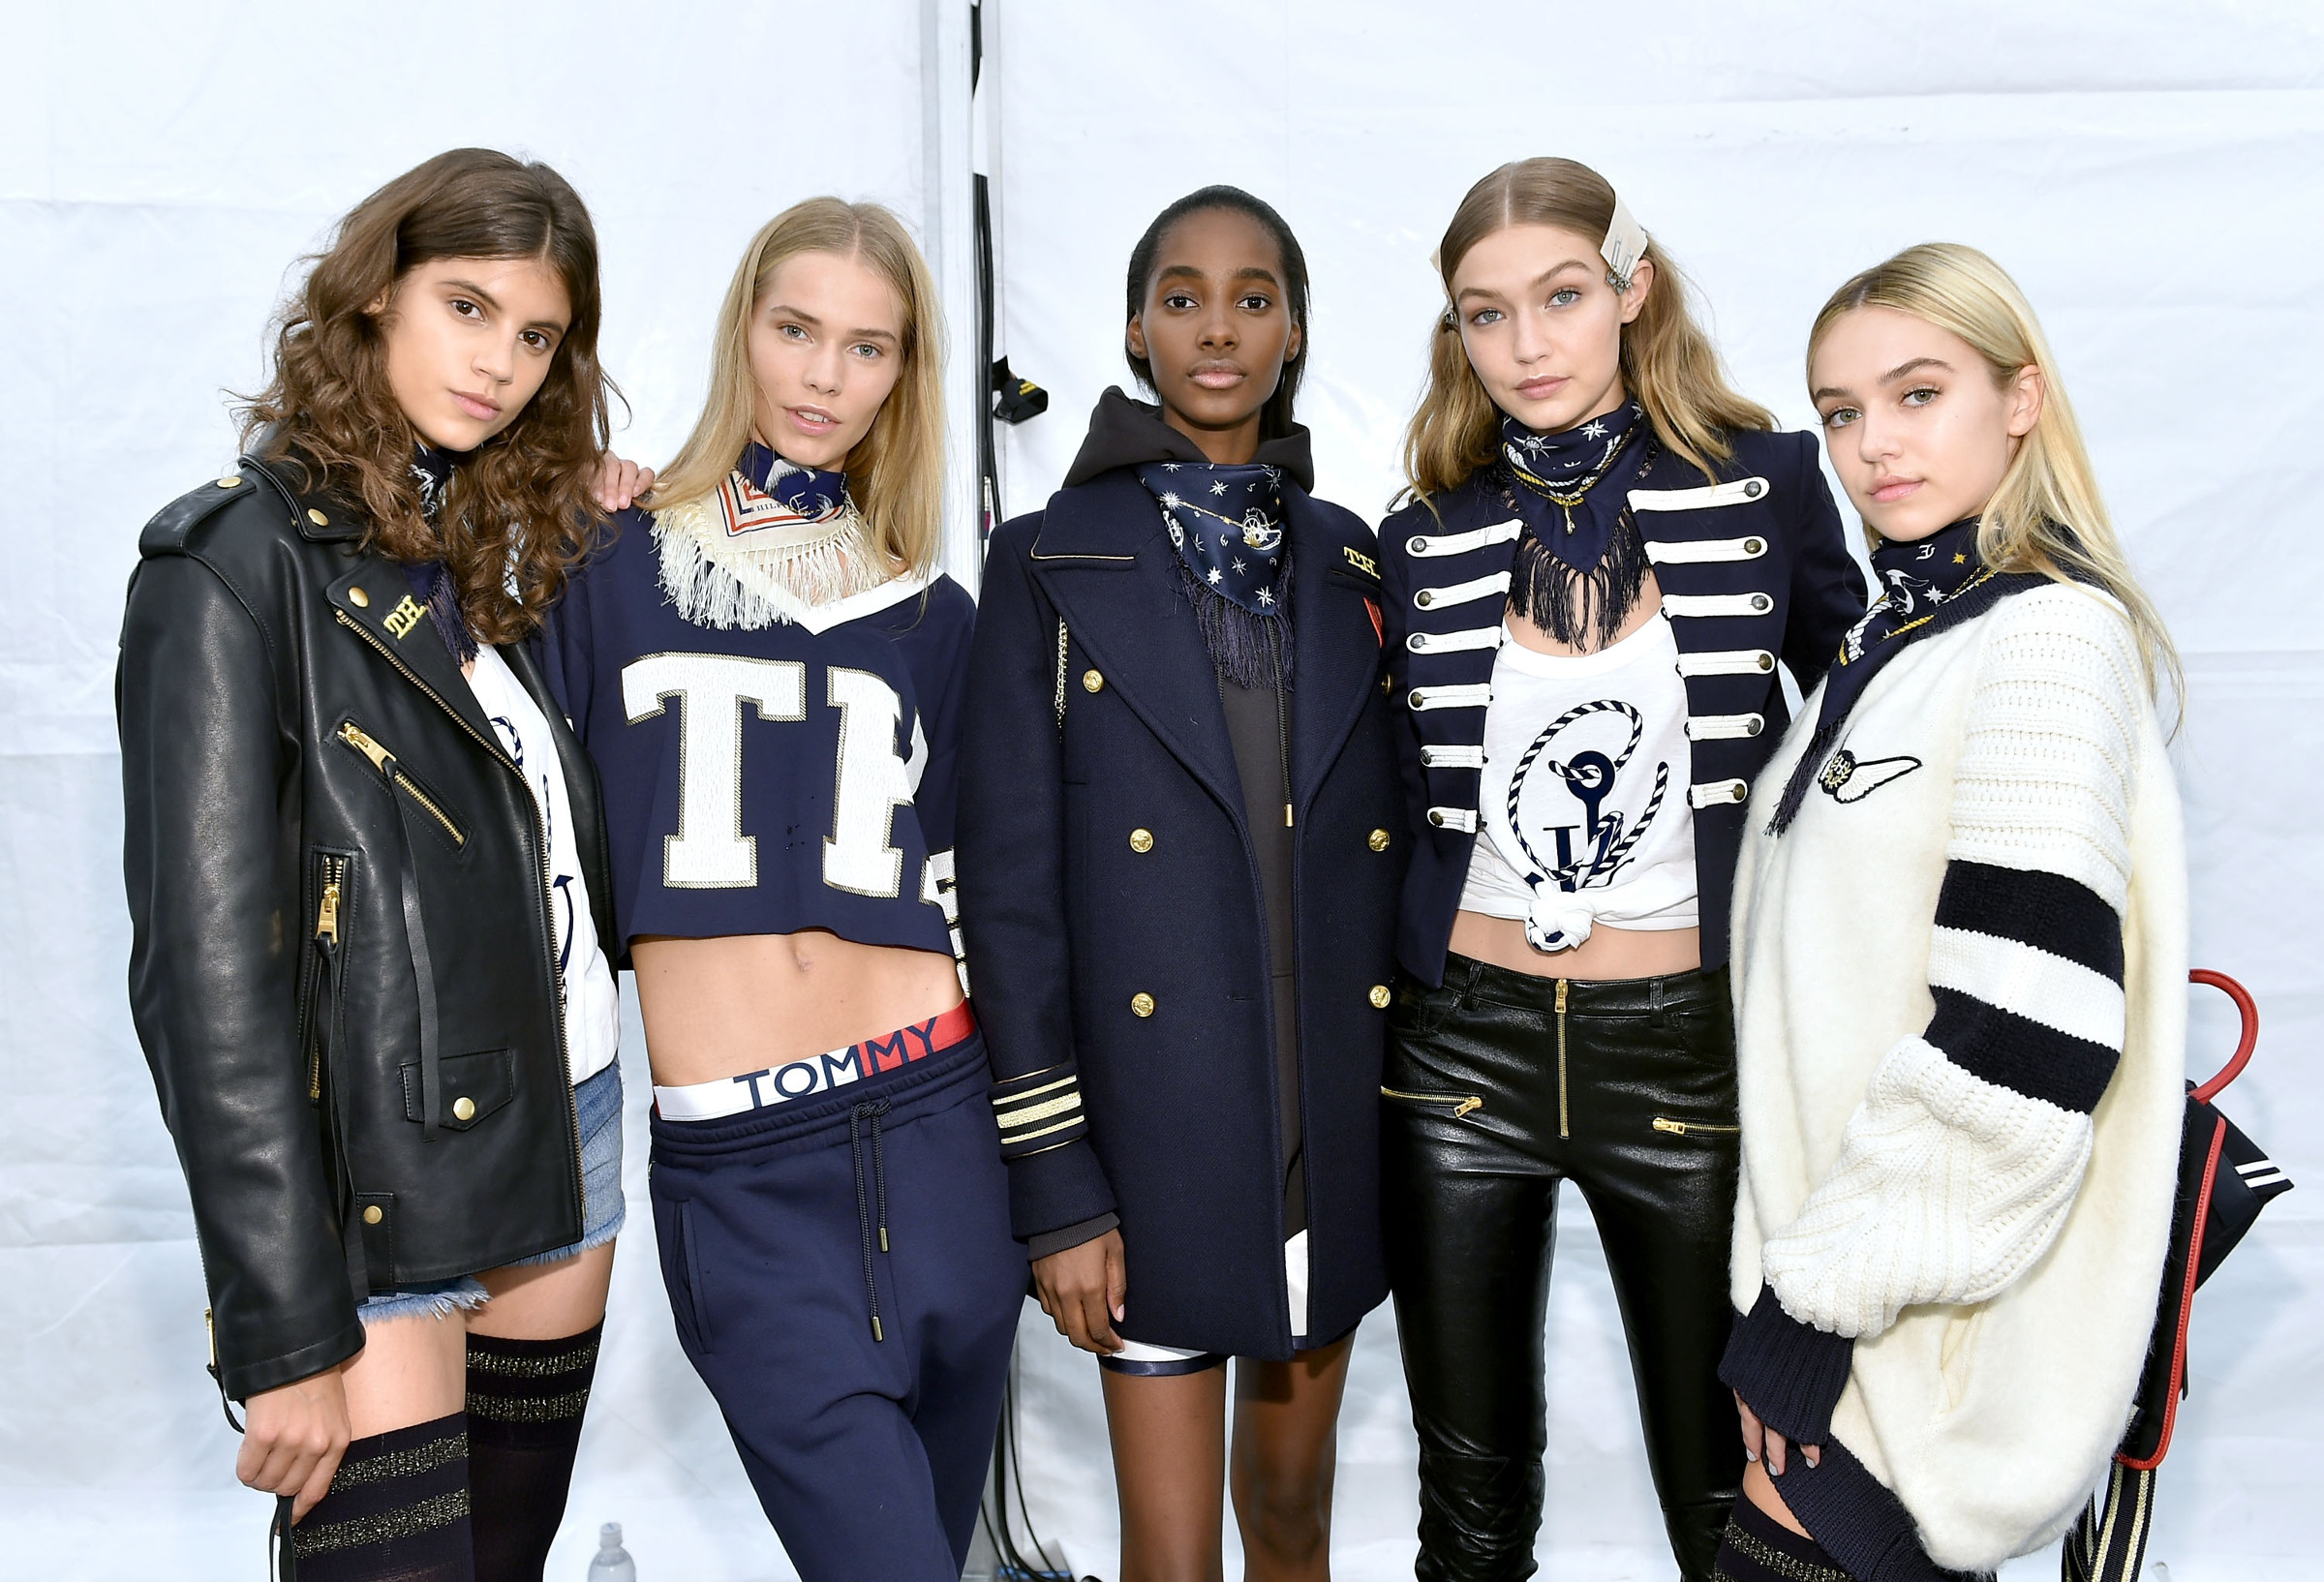 Backstage Tommy Hilfiger Fashion Models